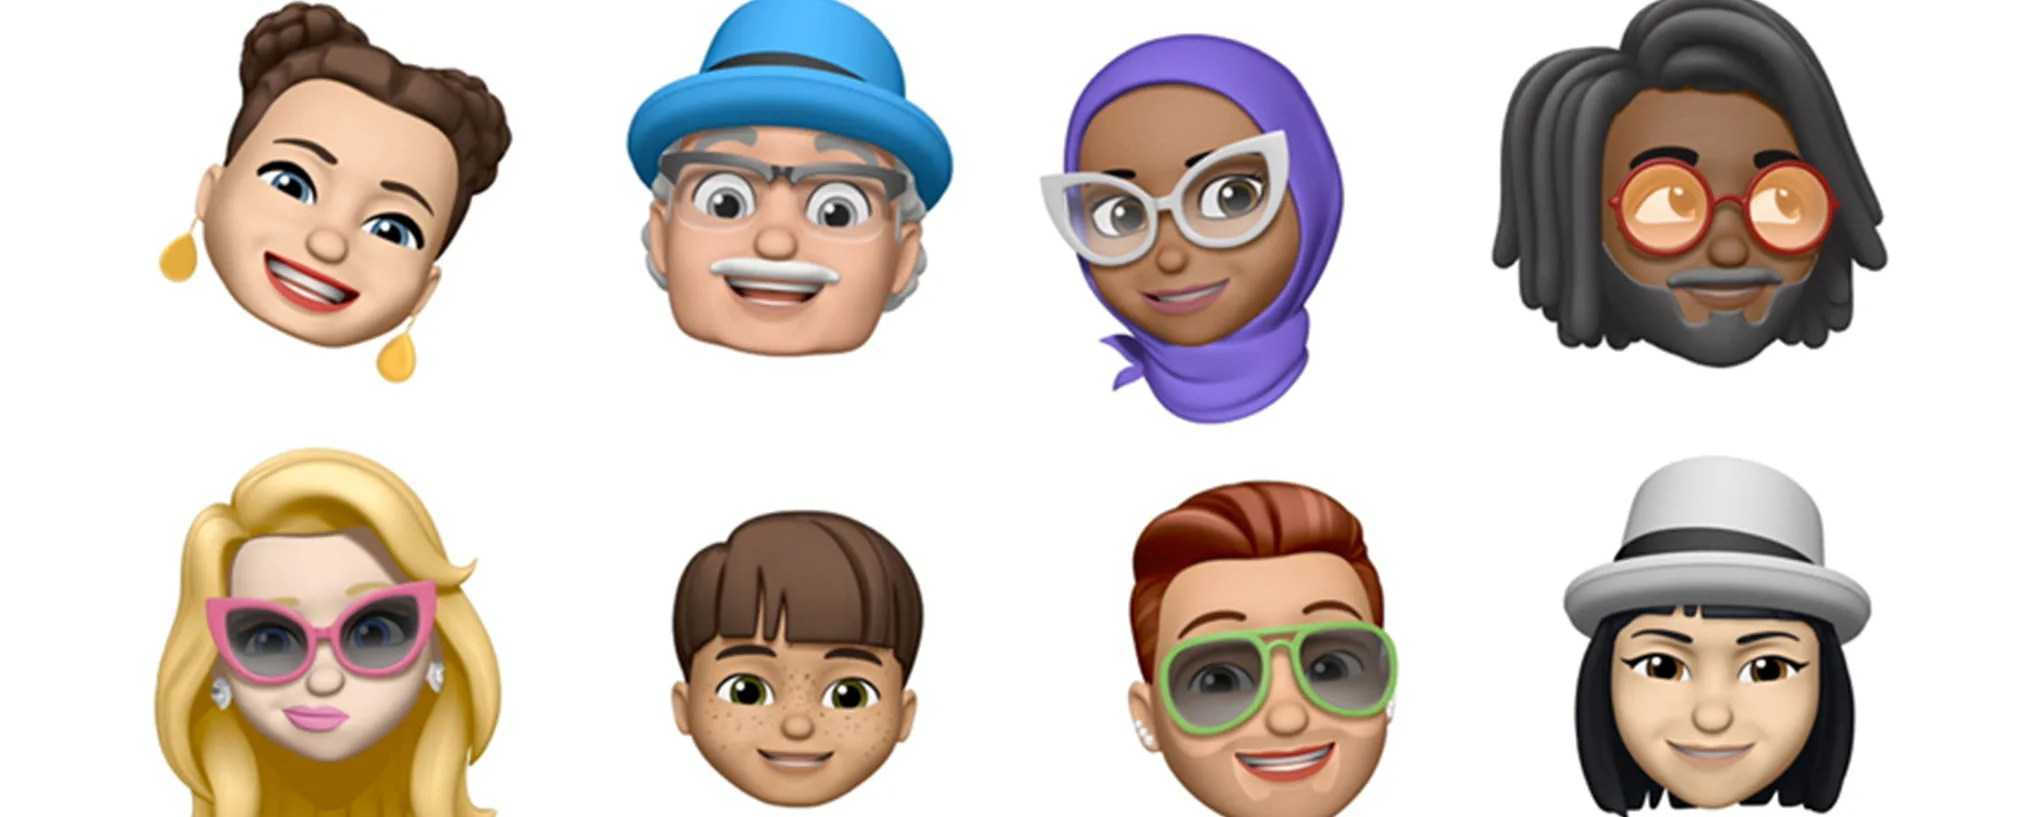 New For Ios 12 Turn Yourself Into An Animoji With Apple S